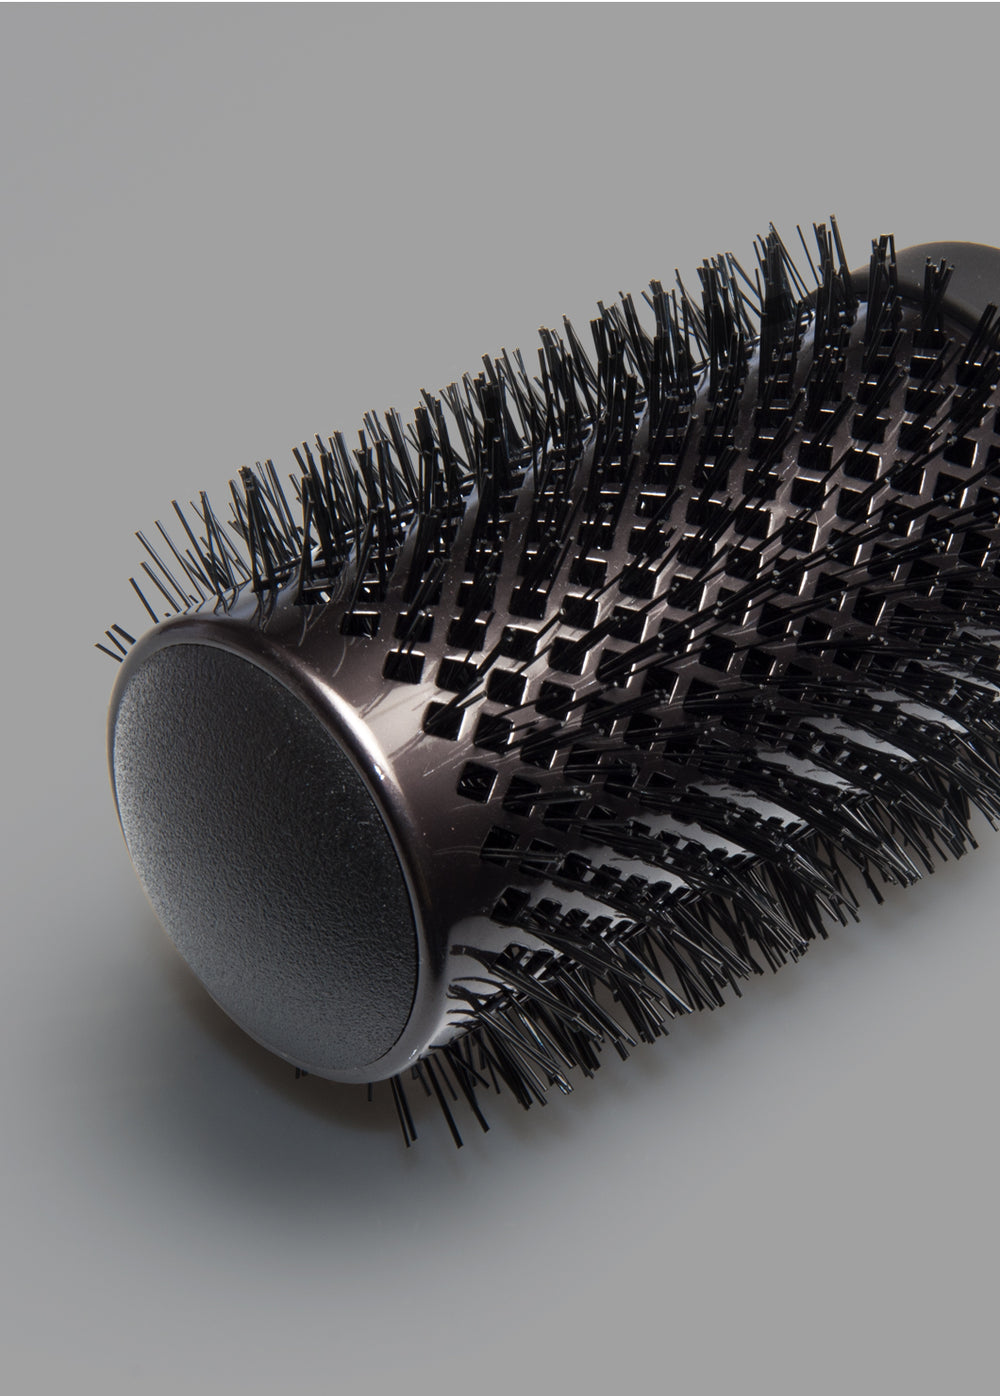 Fromm Pro Professional Salon Elite Thermal Black Ceramic Round Brush bristles close-up